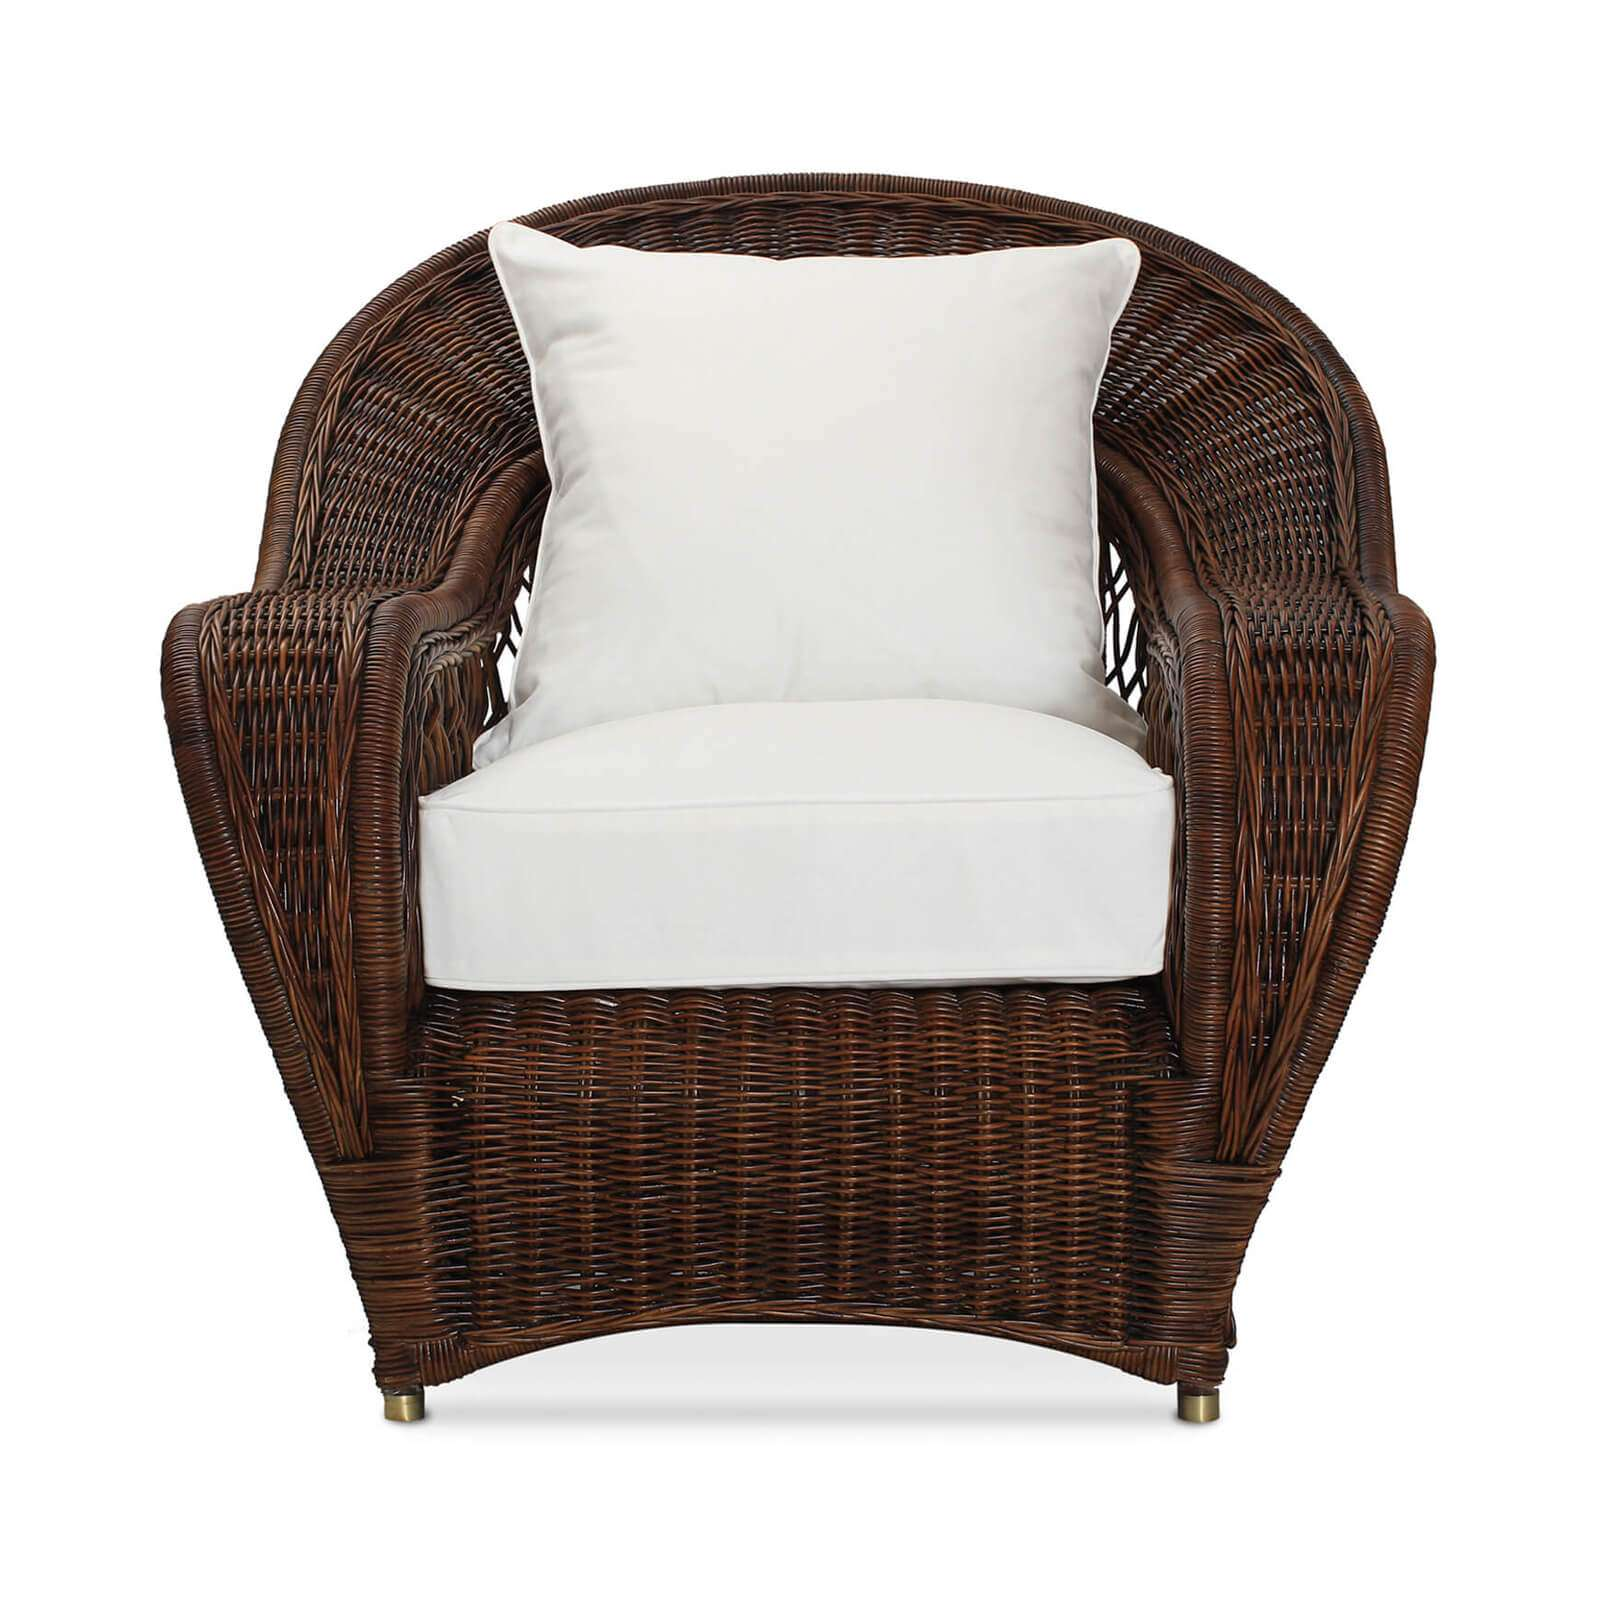 CALYPSO CHAIR 005 - STUART MEMBERY HOME COLLECTION